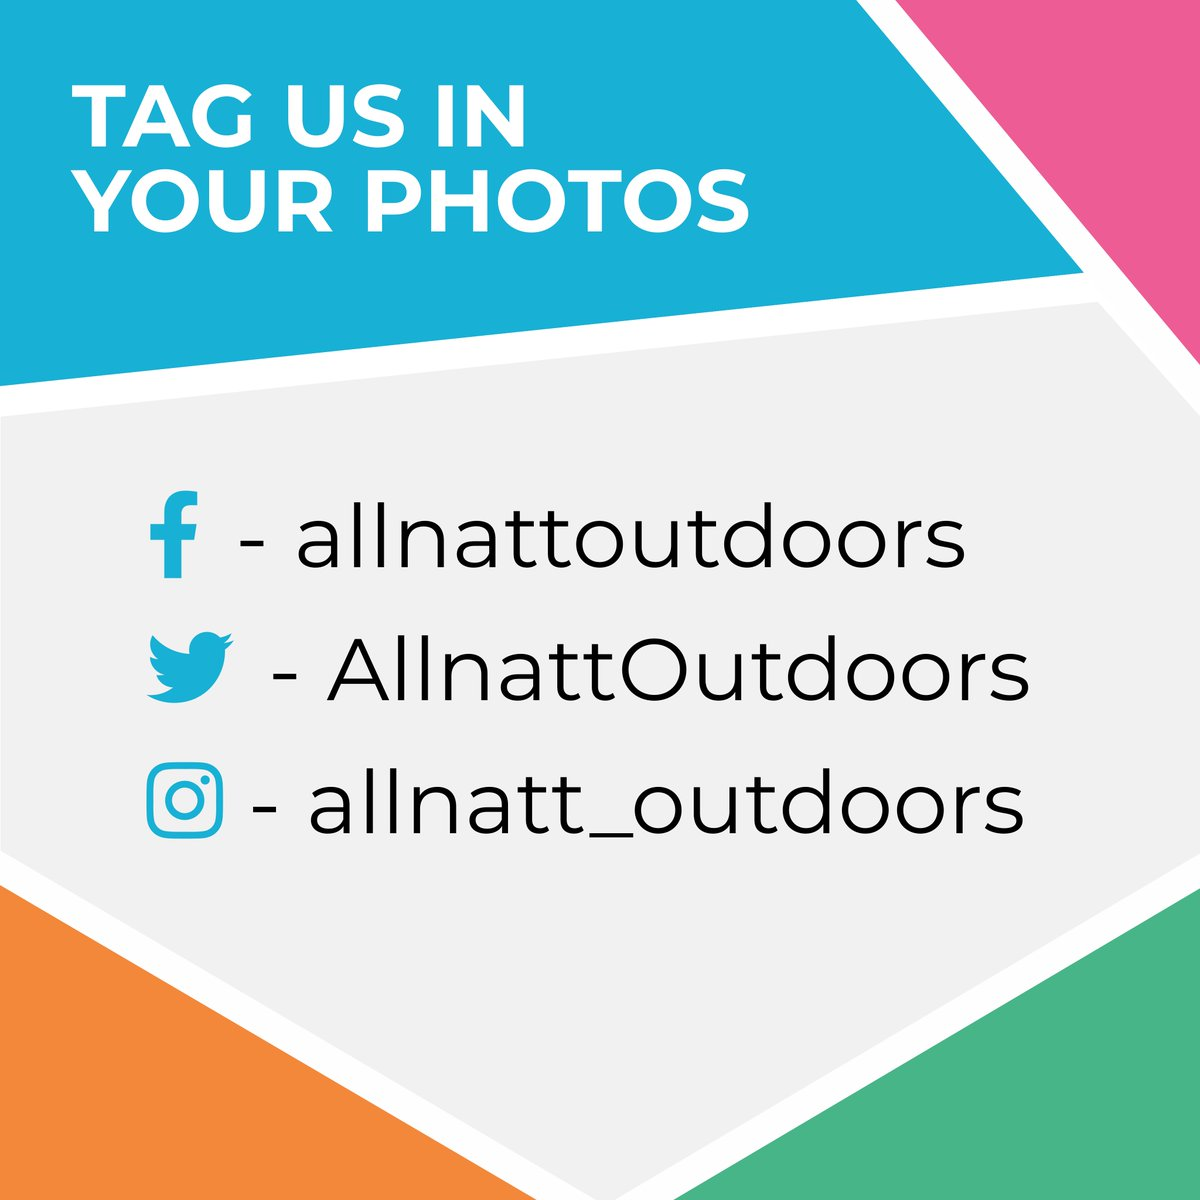 Now you're back at school we hope it is going well for you all. How are your bubbles? How are your students? How is your new normal looking? We'd love to see how you're all getting on - keep tagging us in your photos. #AllnattAdventures #KeepInTouch #Photos https://t.co/nrcAC9mZ2z